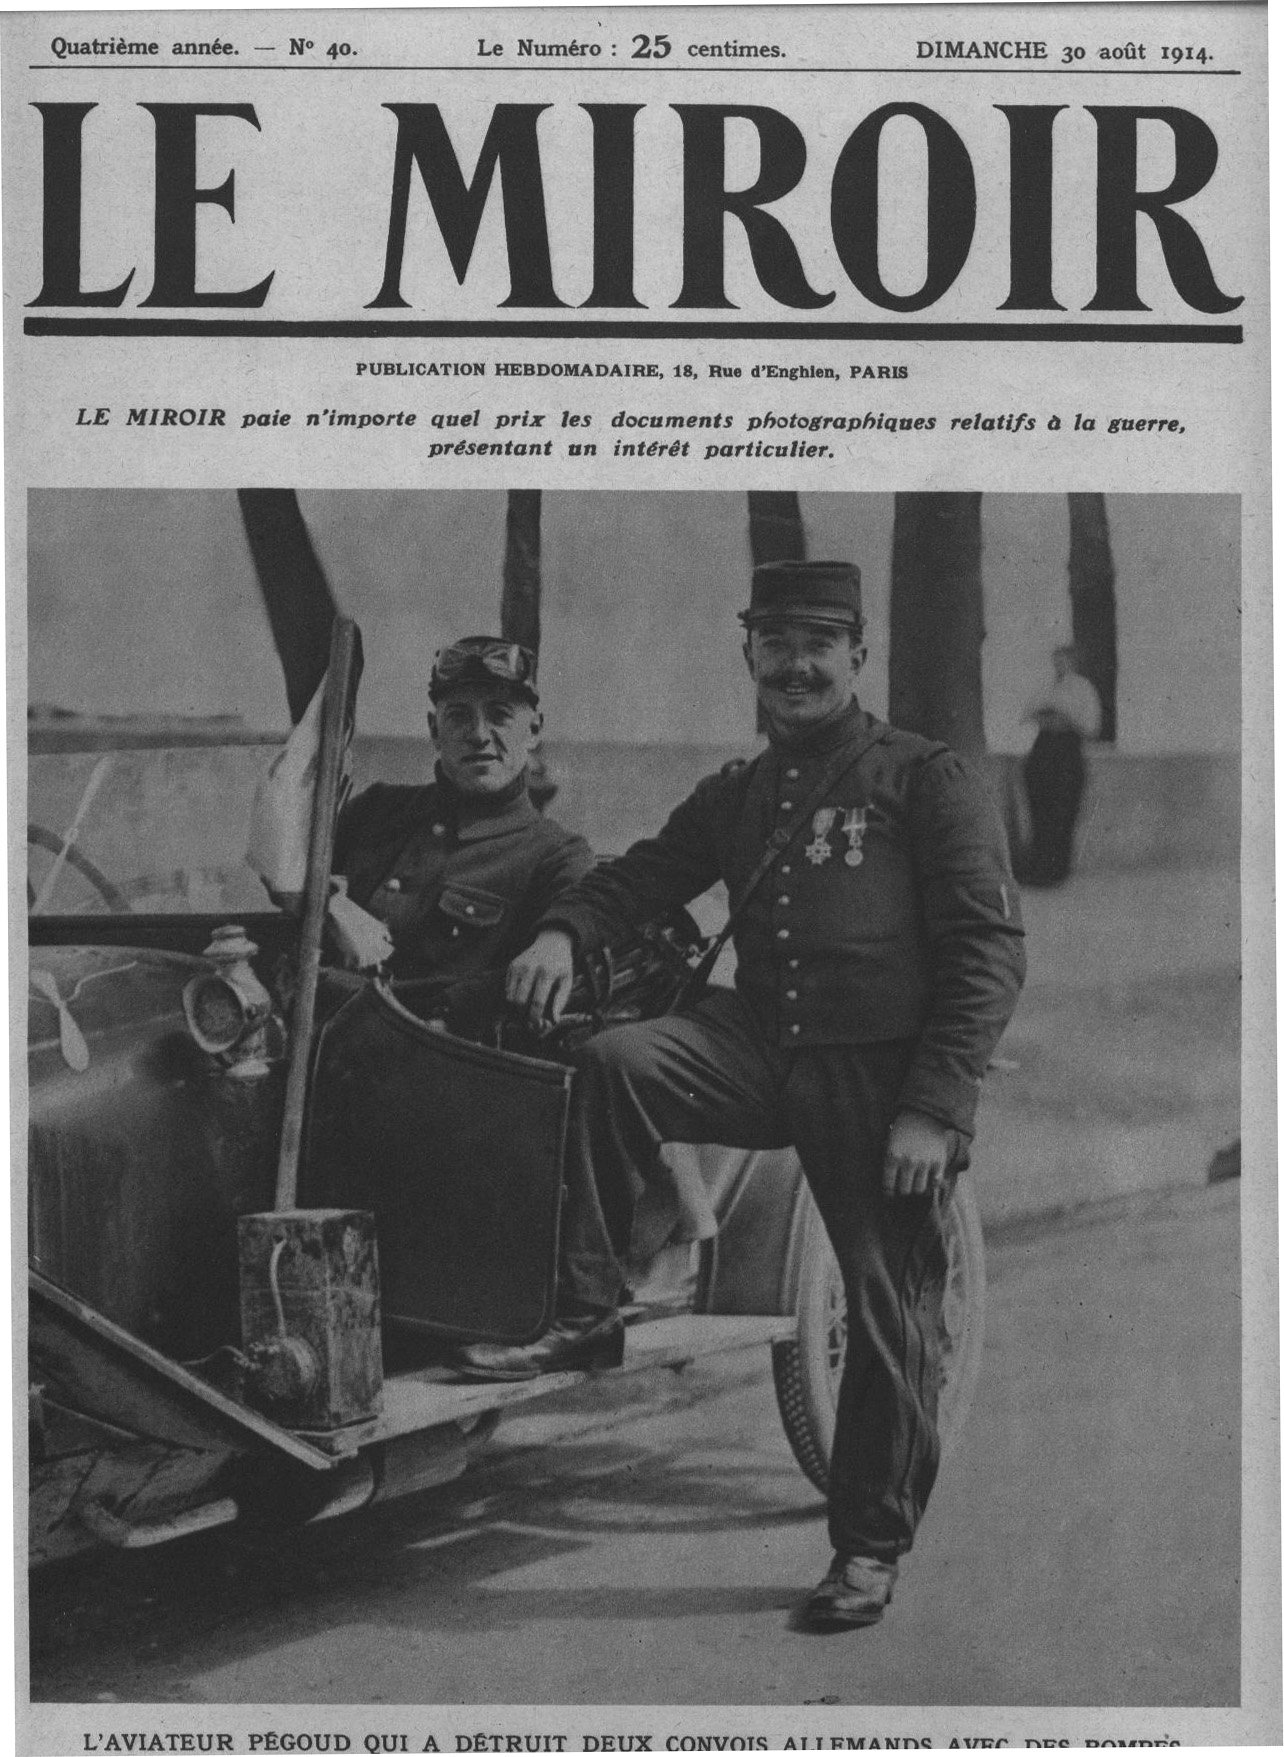 Pégoud with his gunner on the cover of a magazine